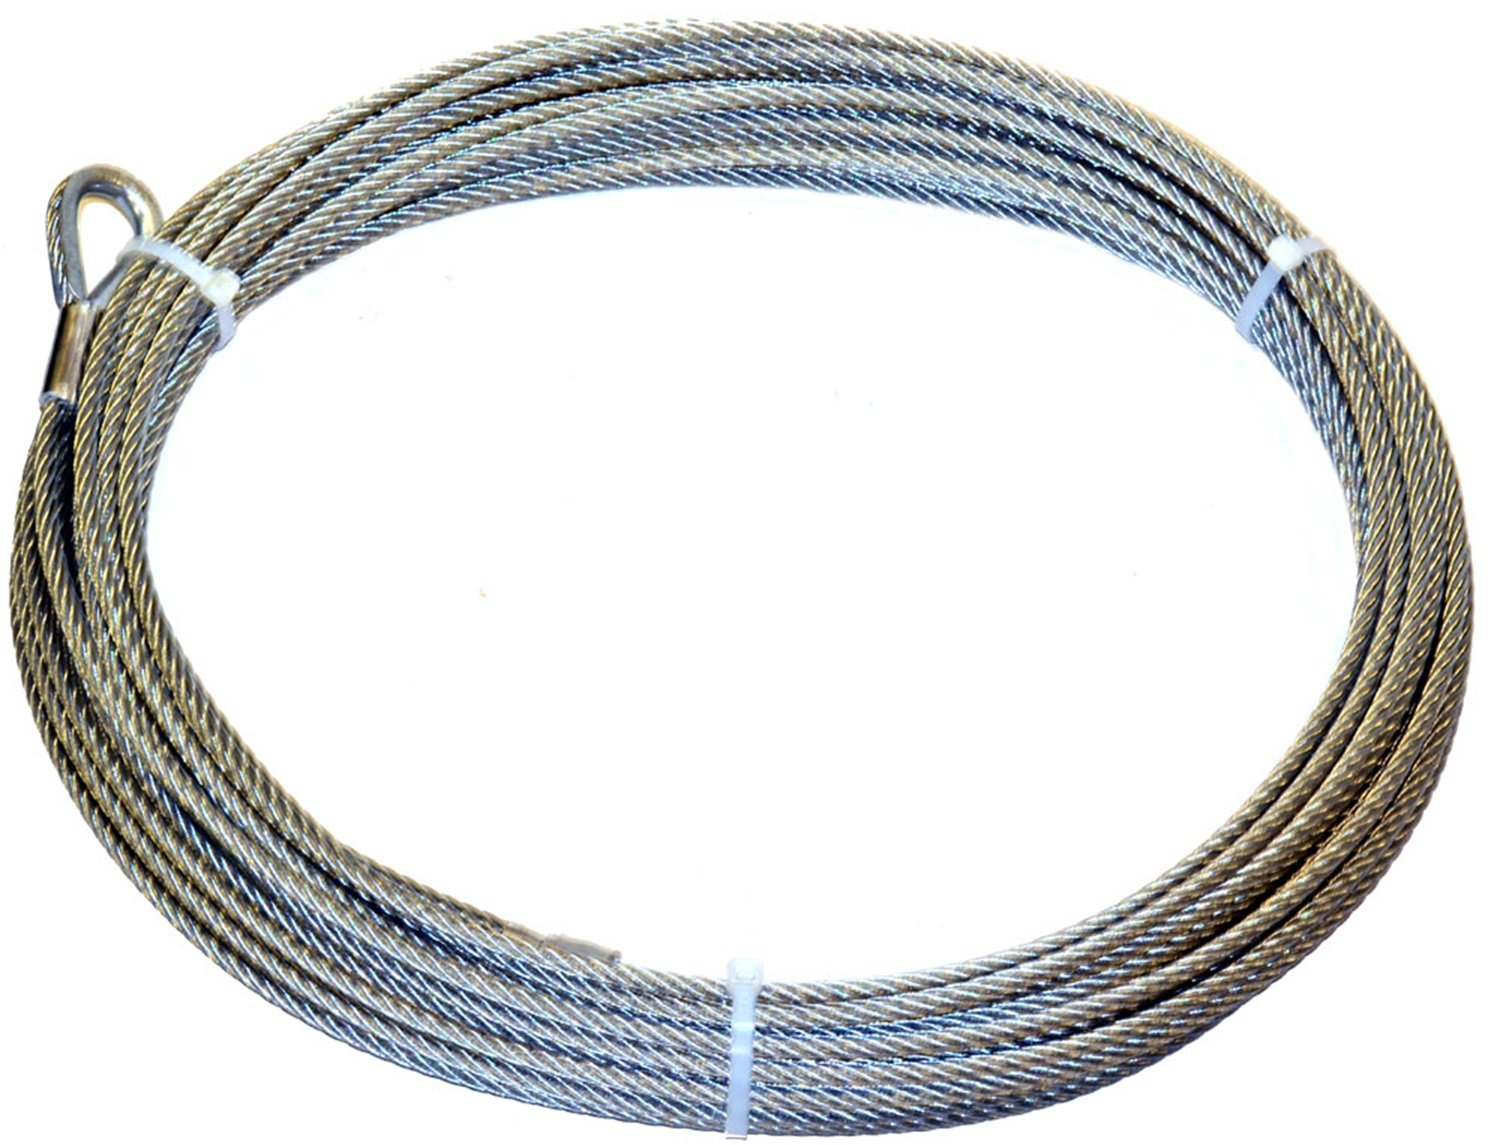 WARN 38312 Winch Rope -  5/16 in. x 125 ft. by Warn